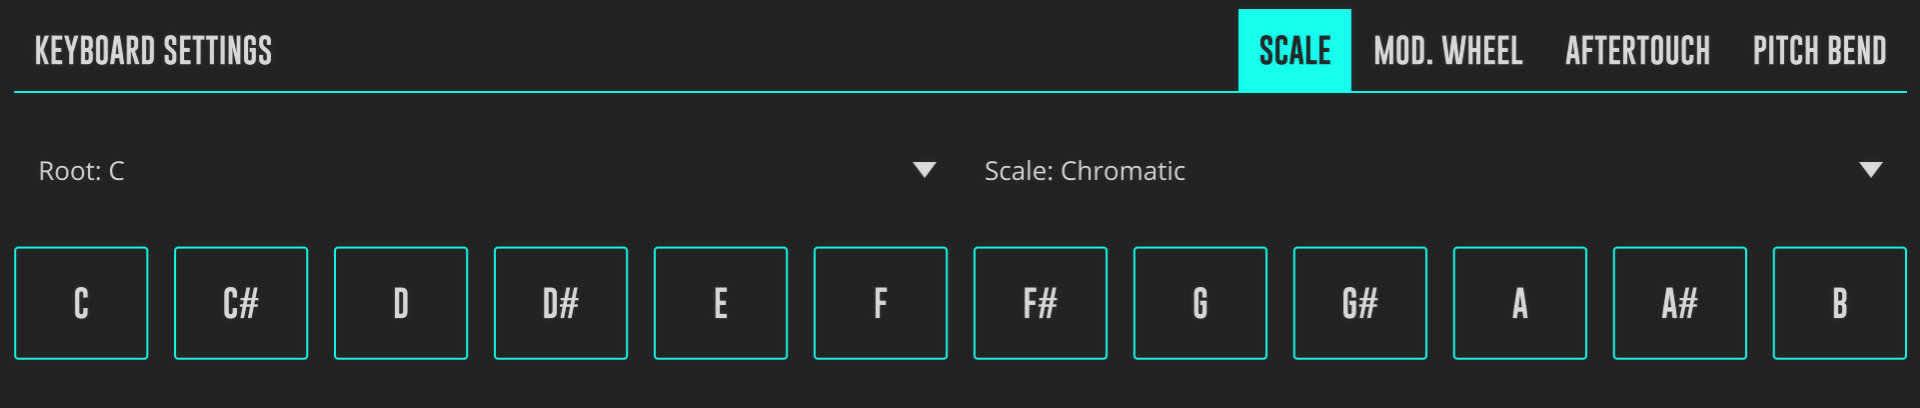 DRC Keyboard Scale Configuration